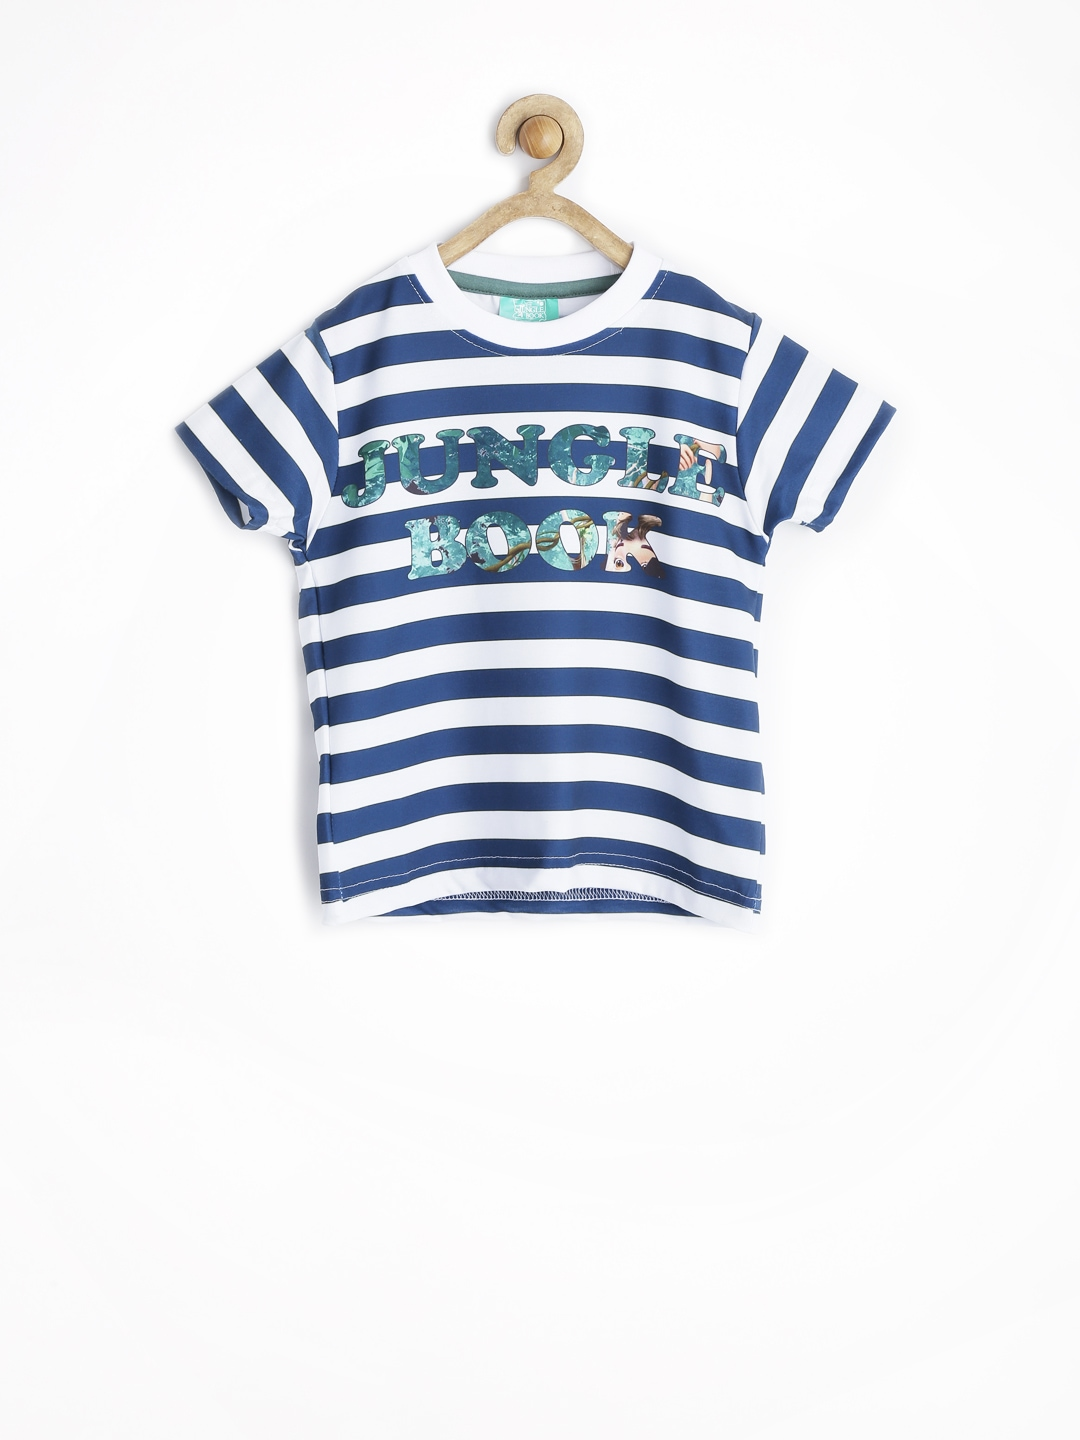 Myntra jungle book boys white teal blue striped t shirt for Boys teal t shirt